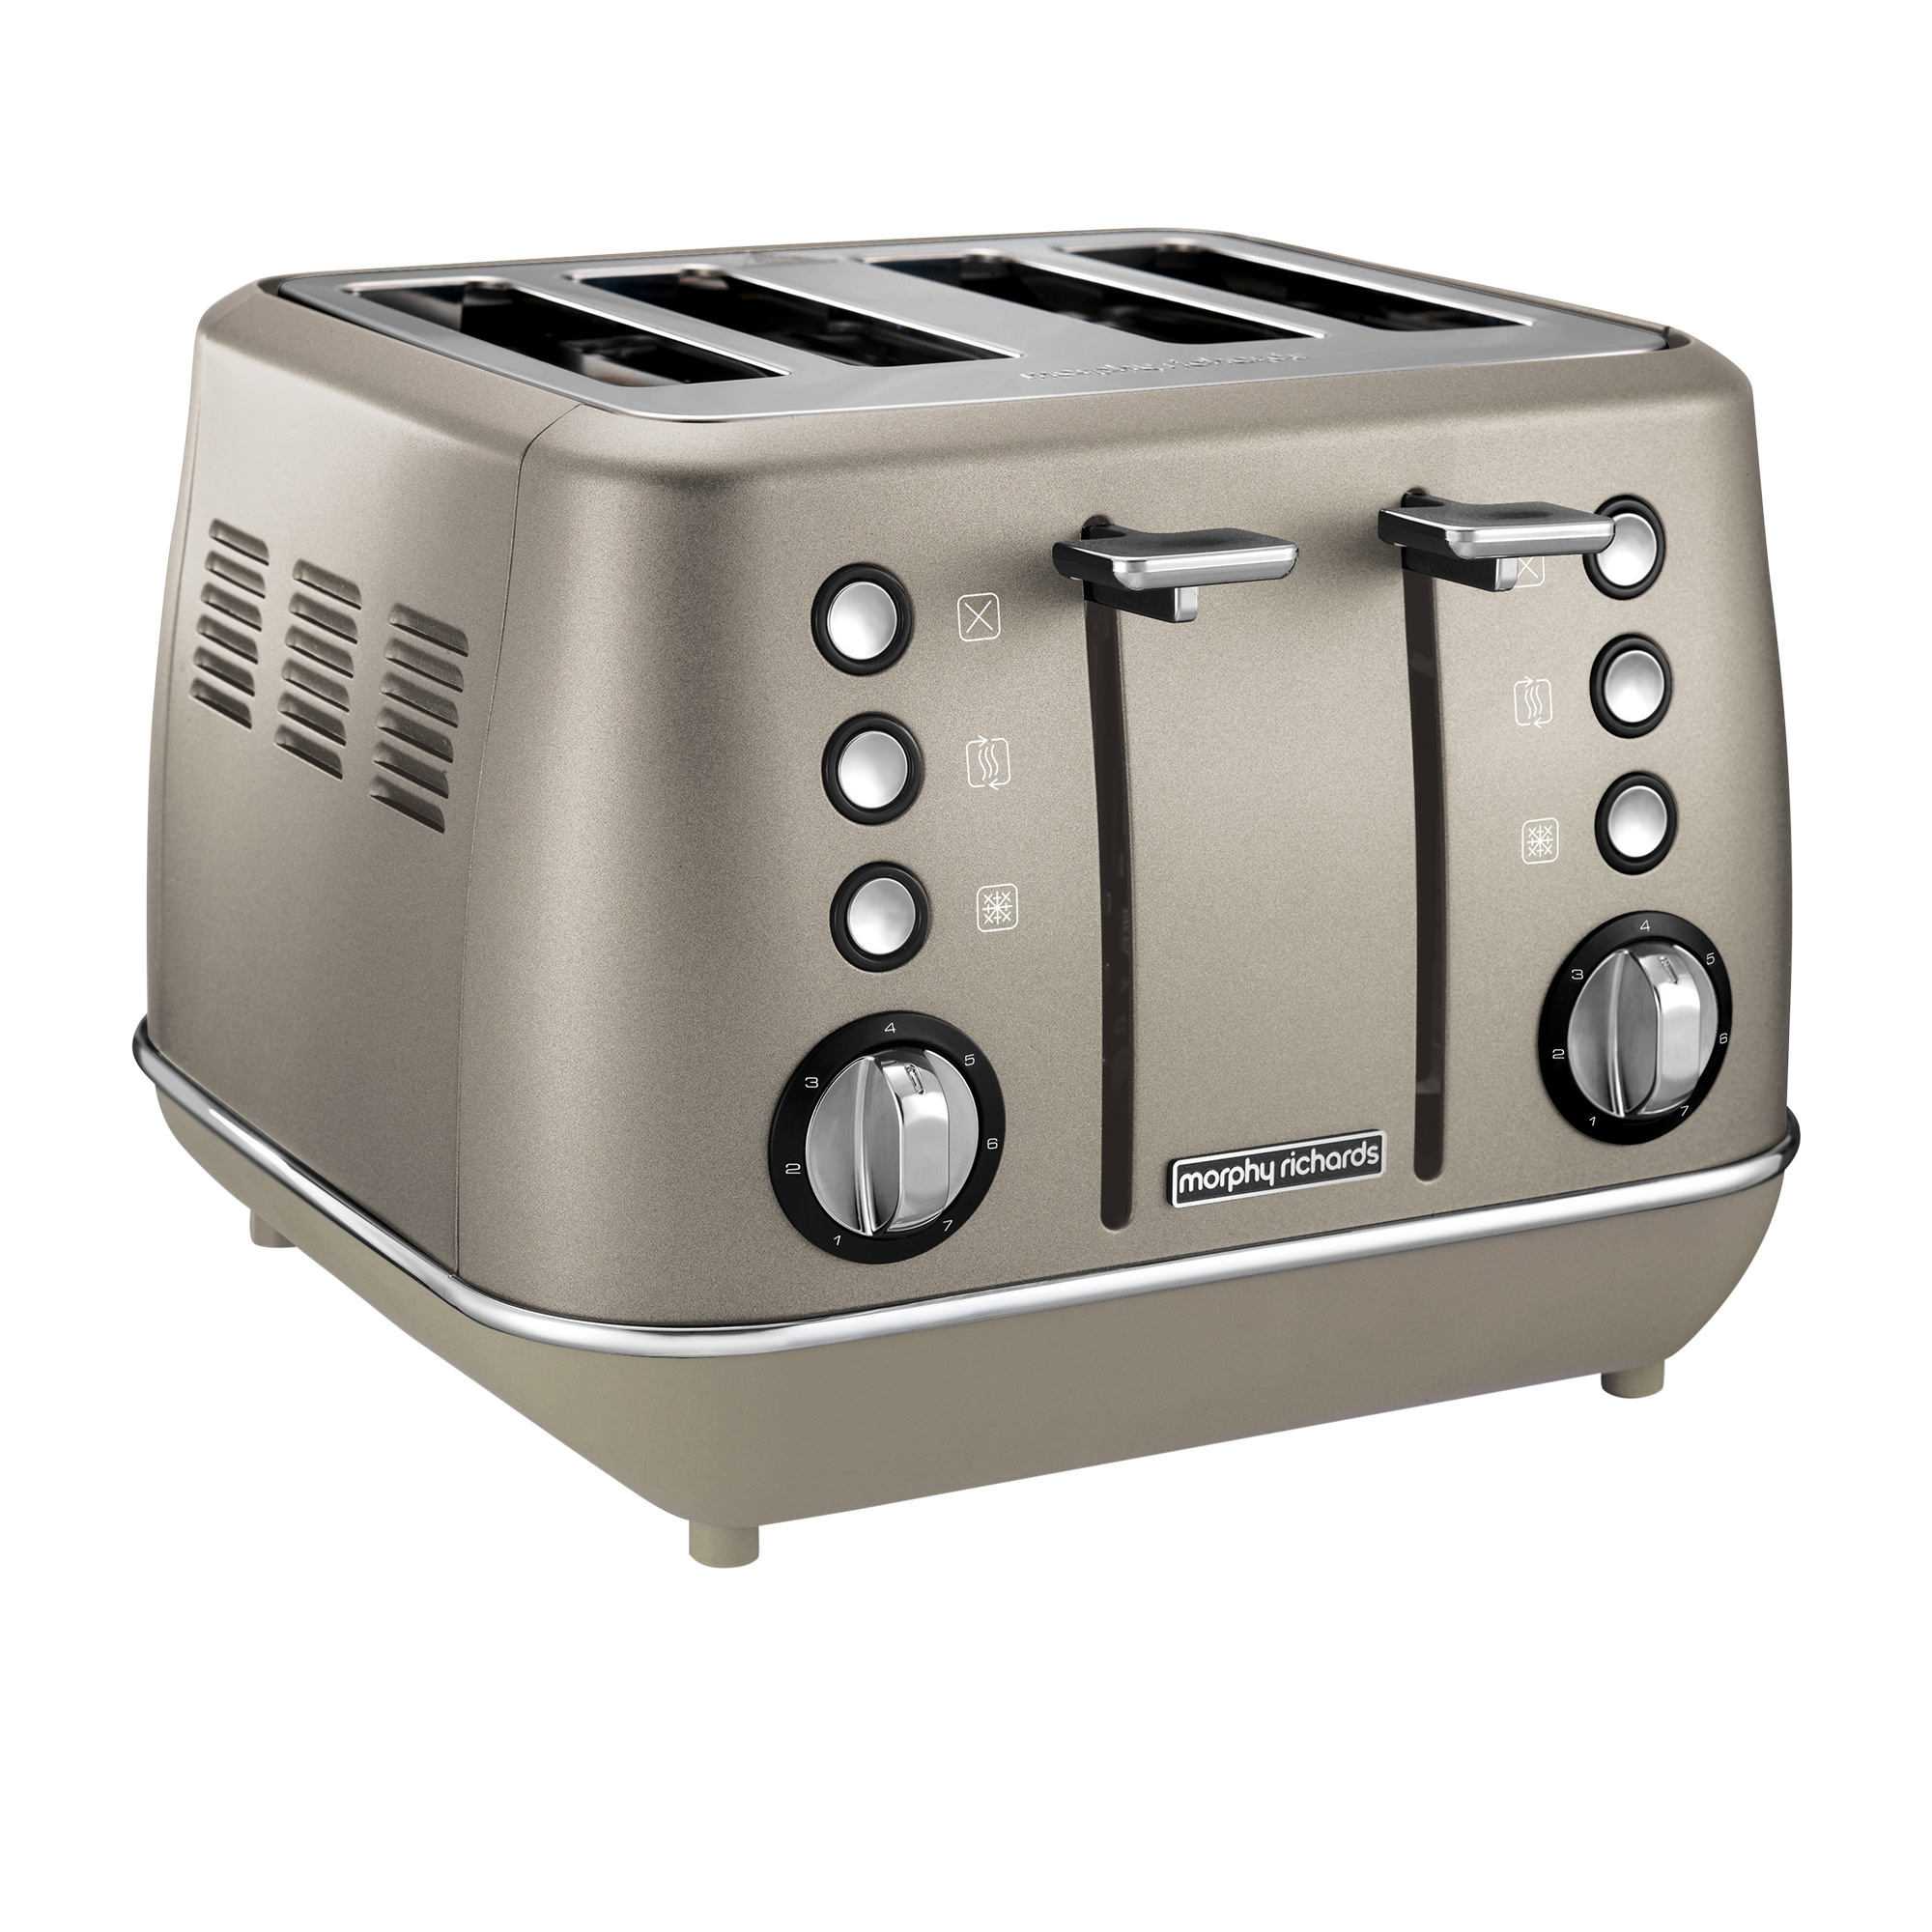 Morphy Richards Evoke Special Edition 4 Slice Toaster Platinum